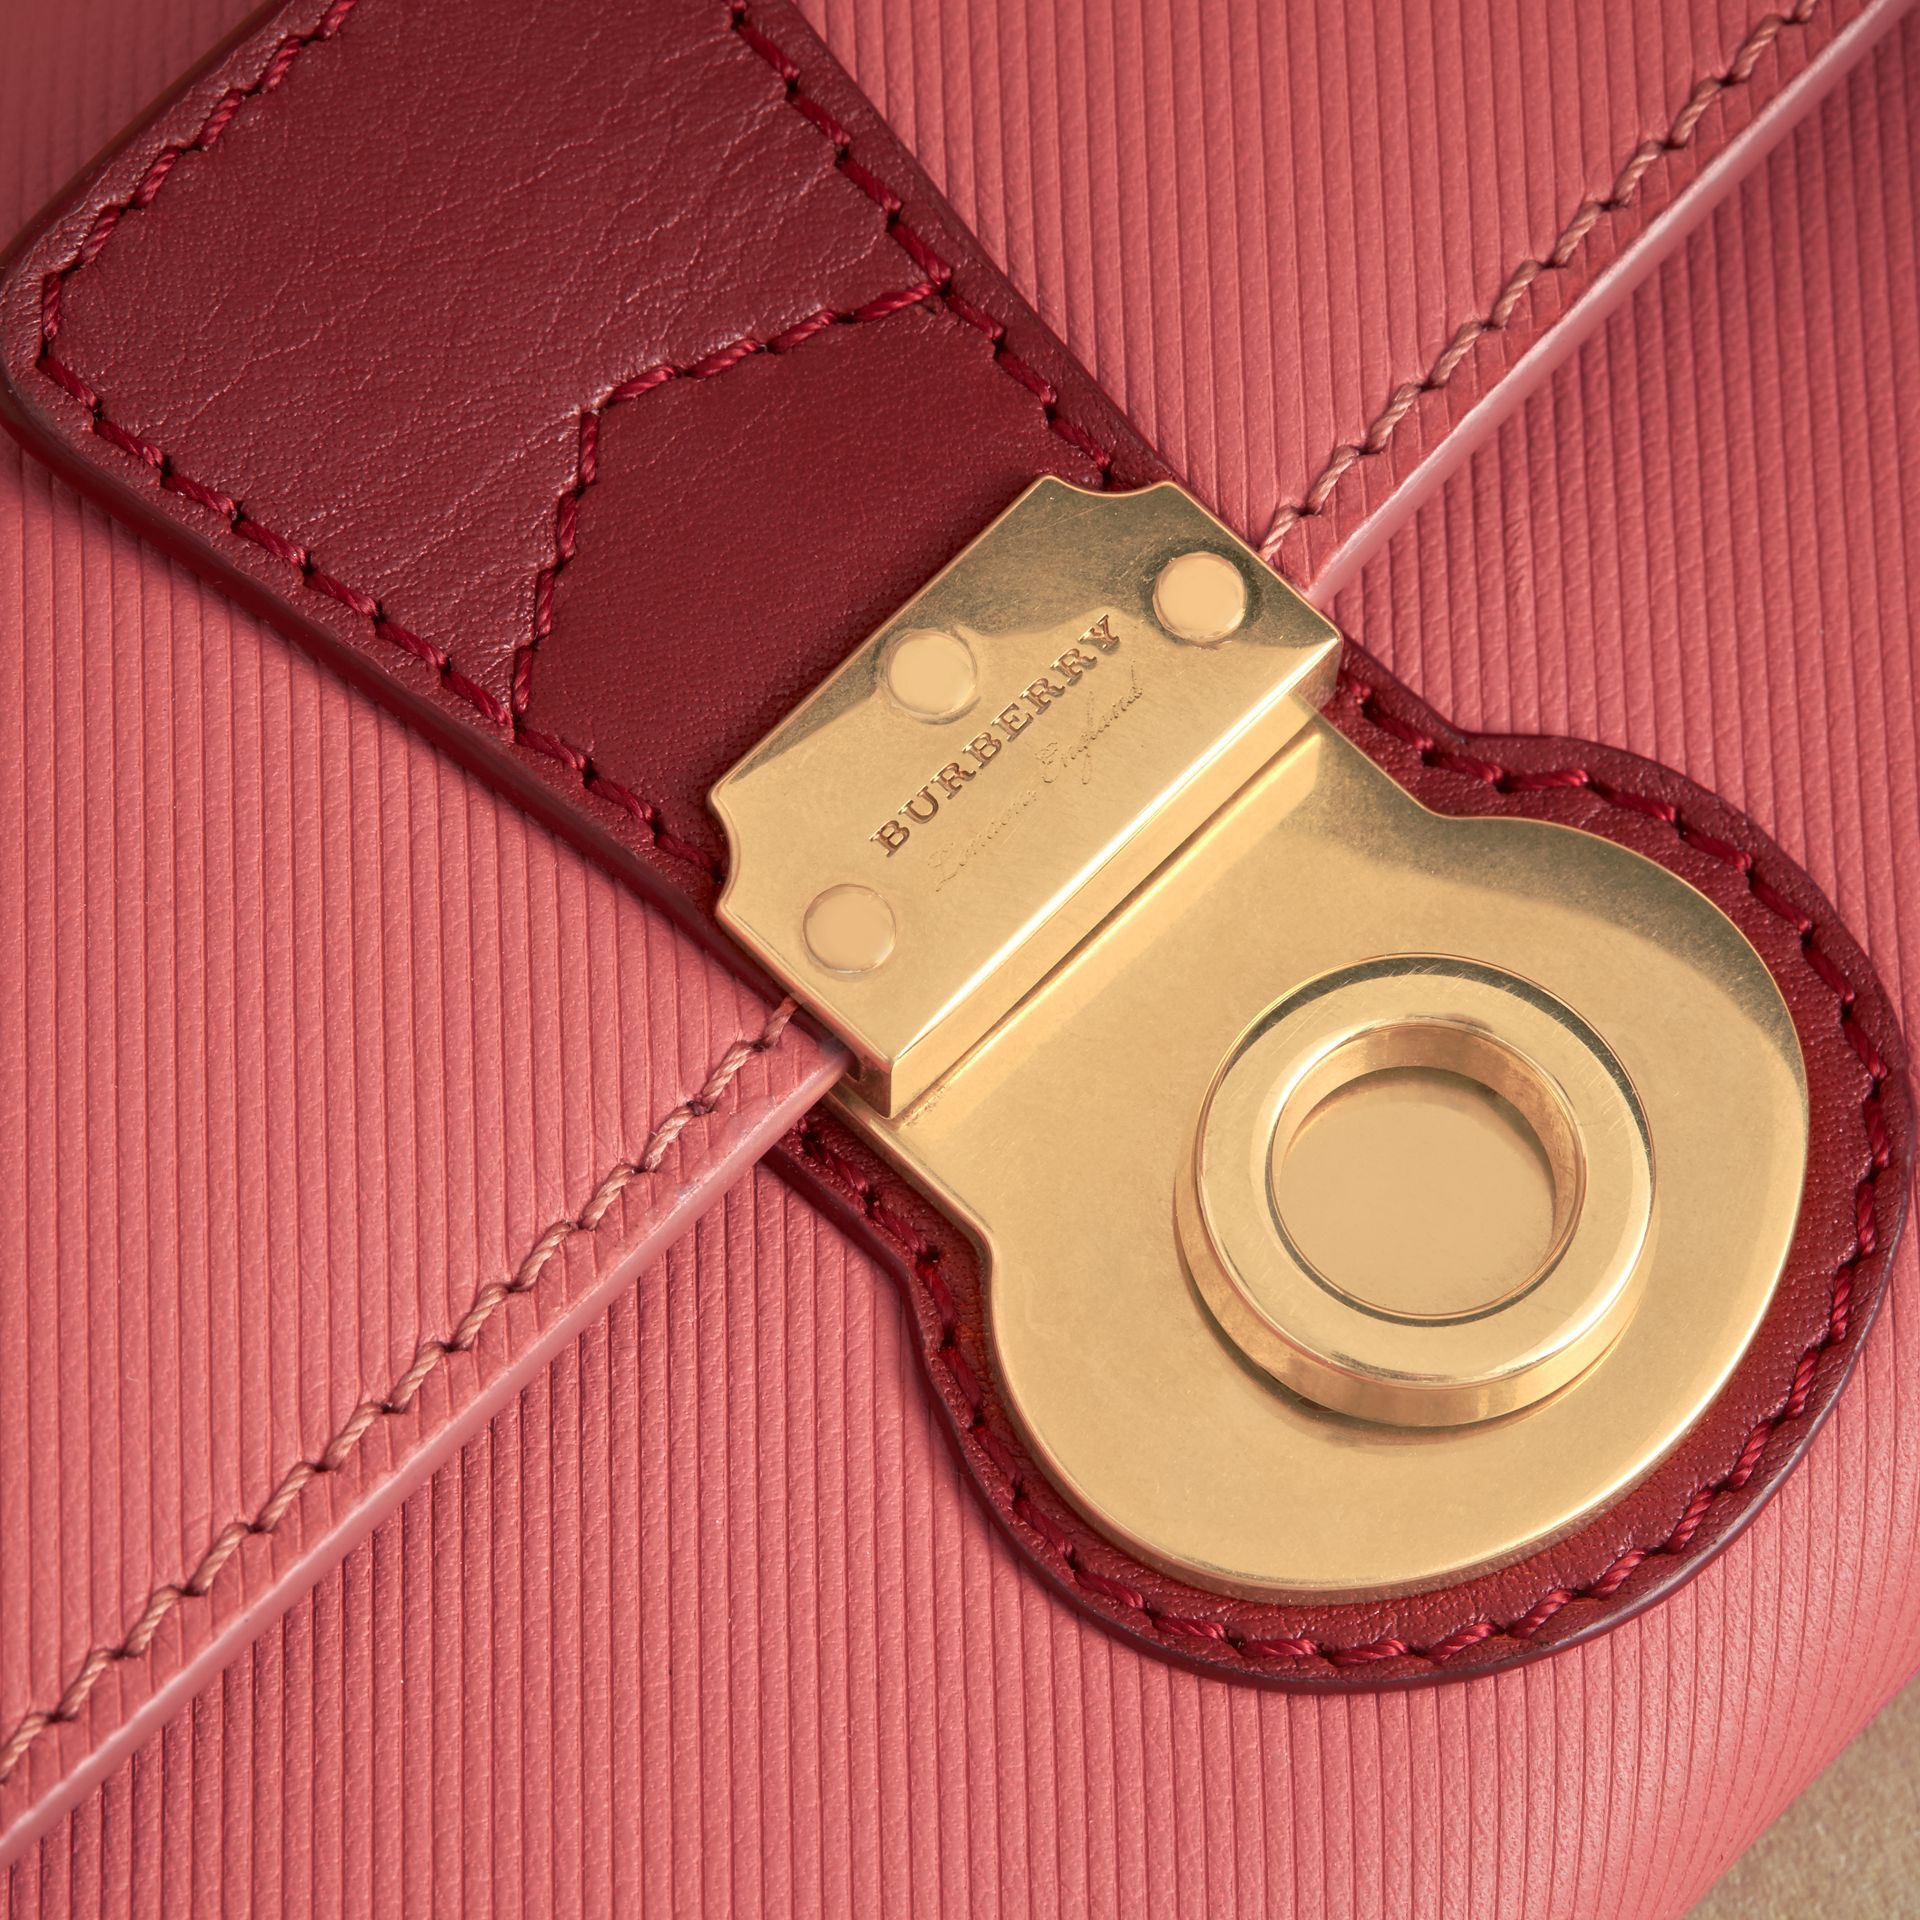 Two-tone Trench Leather Continental Wallet in Blossom Pink/antique Red - Women | Burberry United Kingdom - gallery image 1